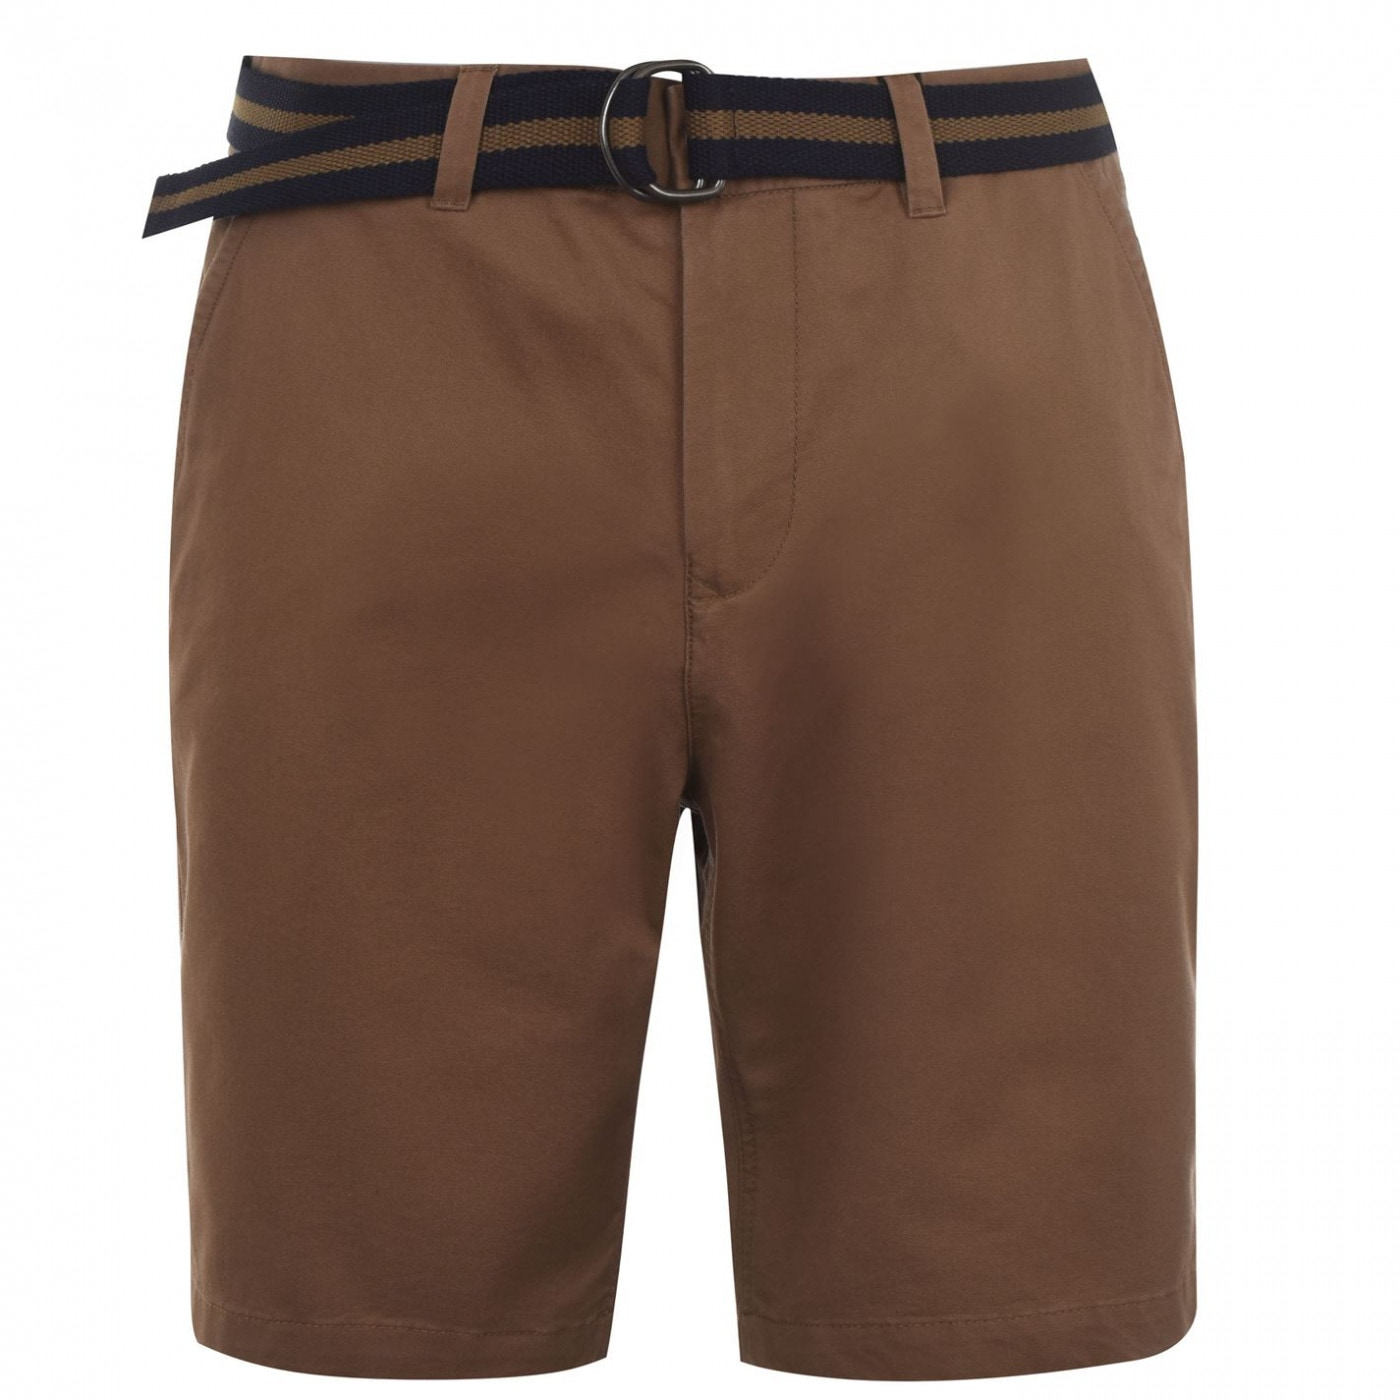 Men's shorts Pierre Cardin Chinos